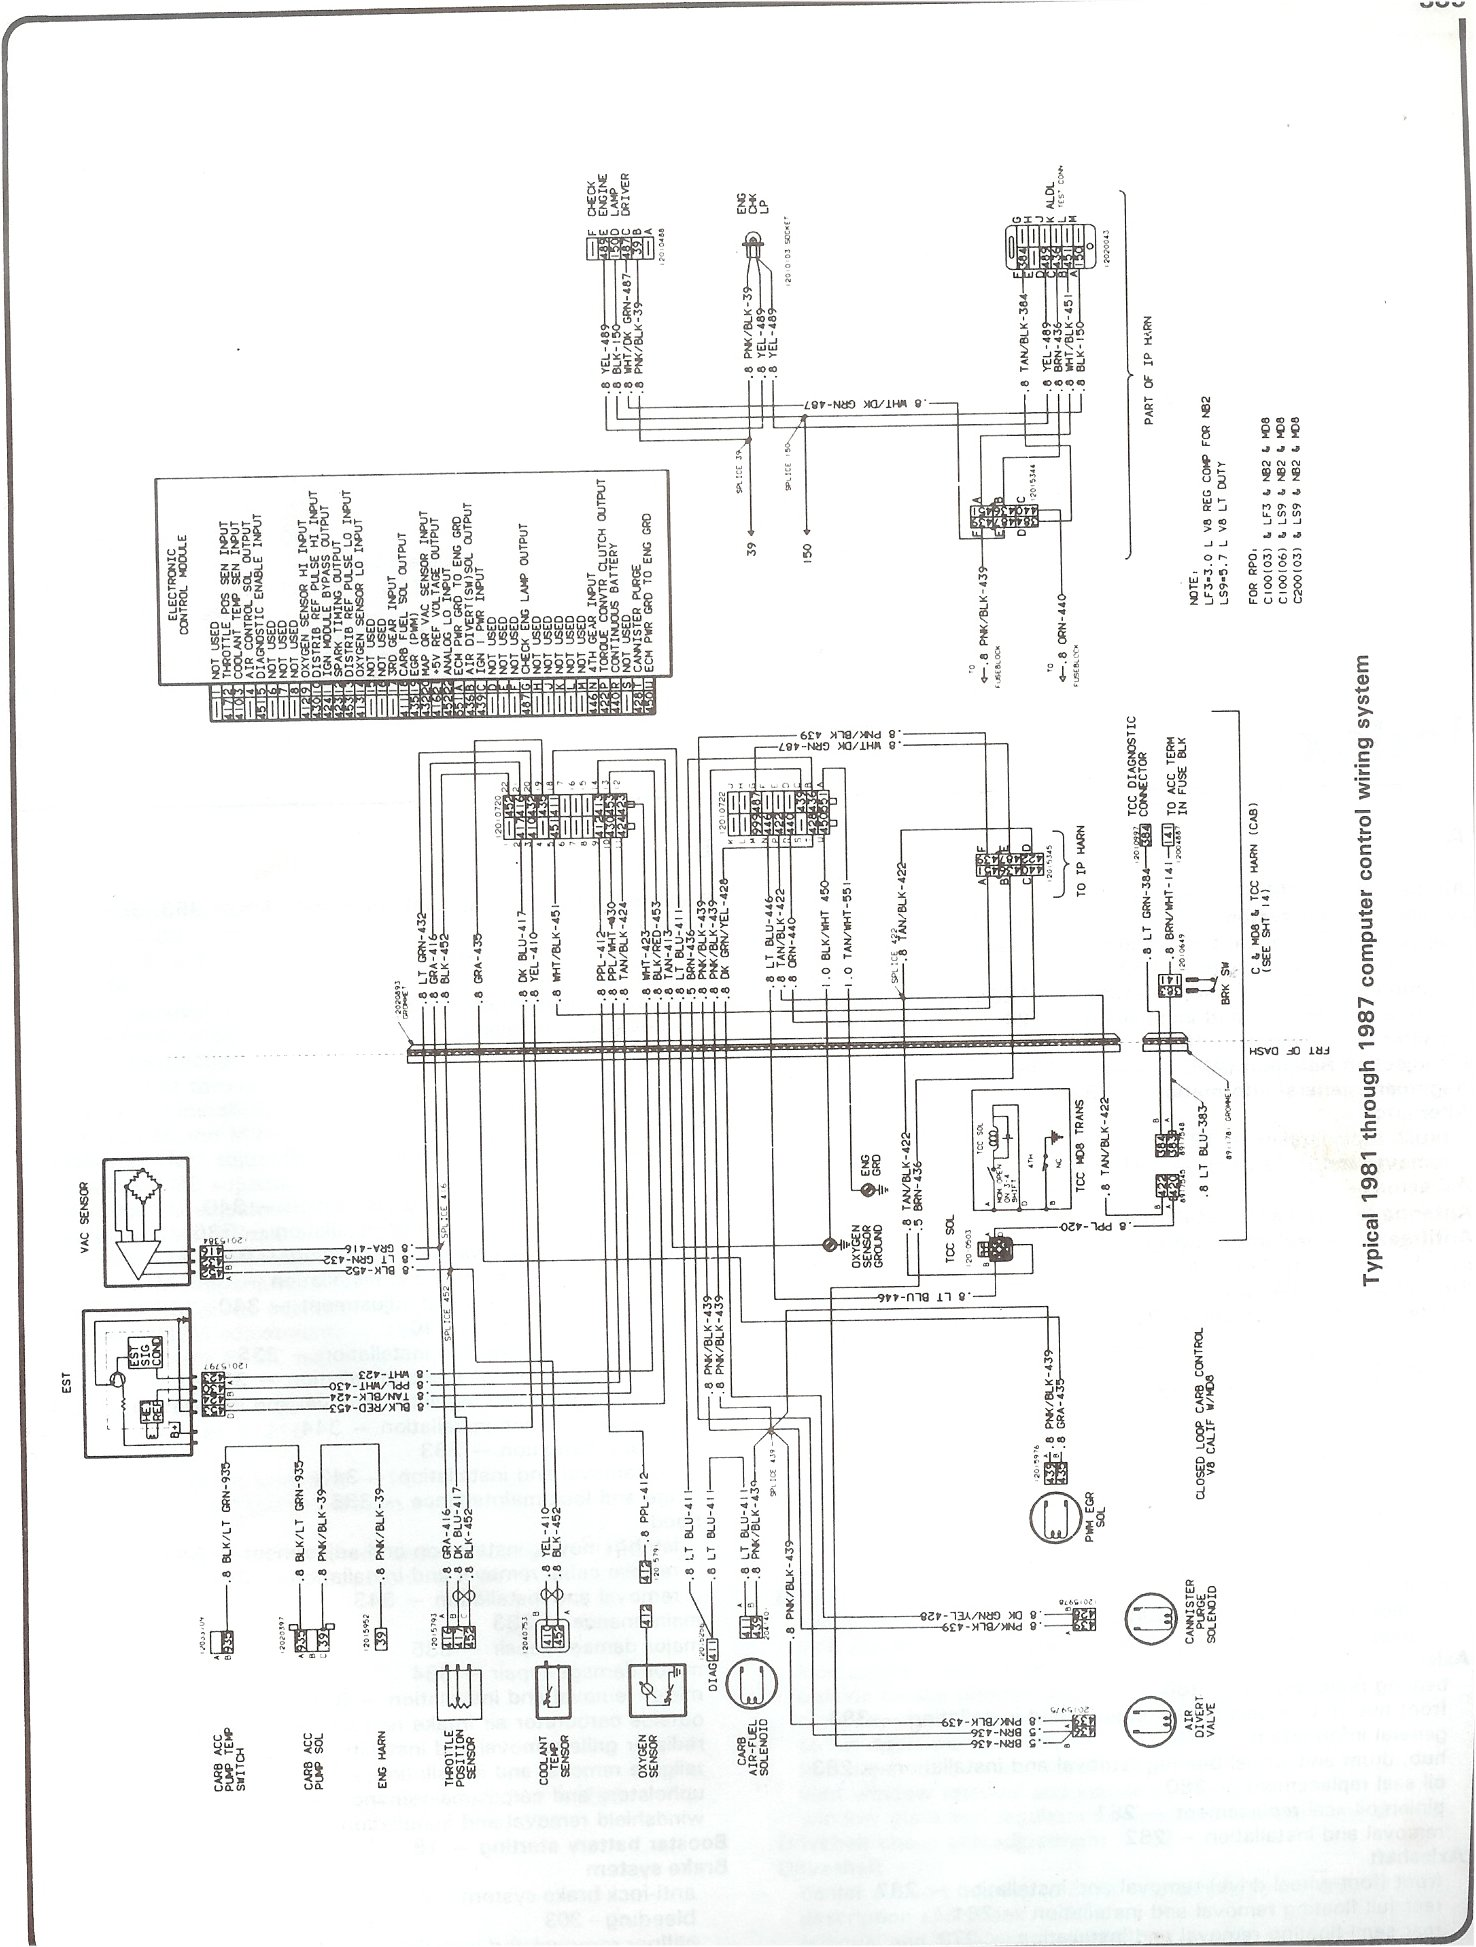 81 87_computer_control_wiring complete 73 87 wiring diagrams 1985 chevy truck wiring diagram at n-0.co